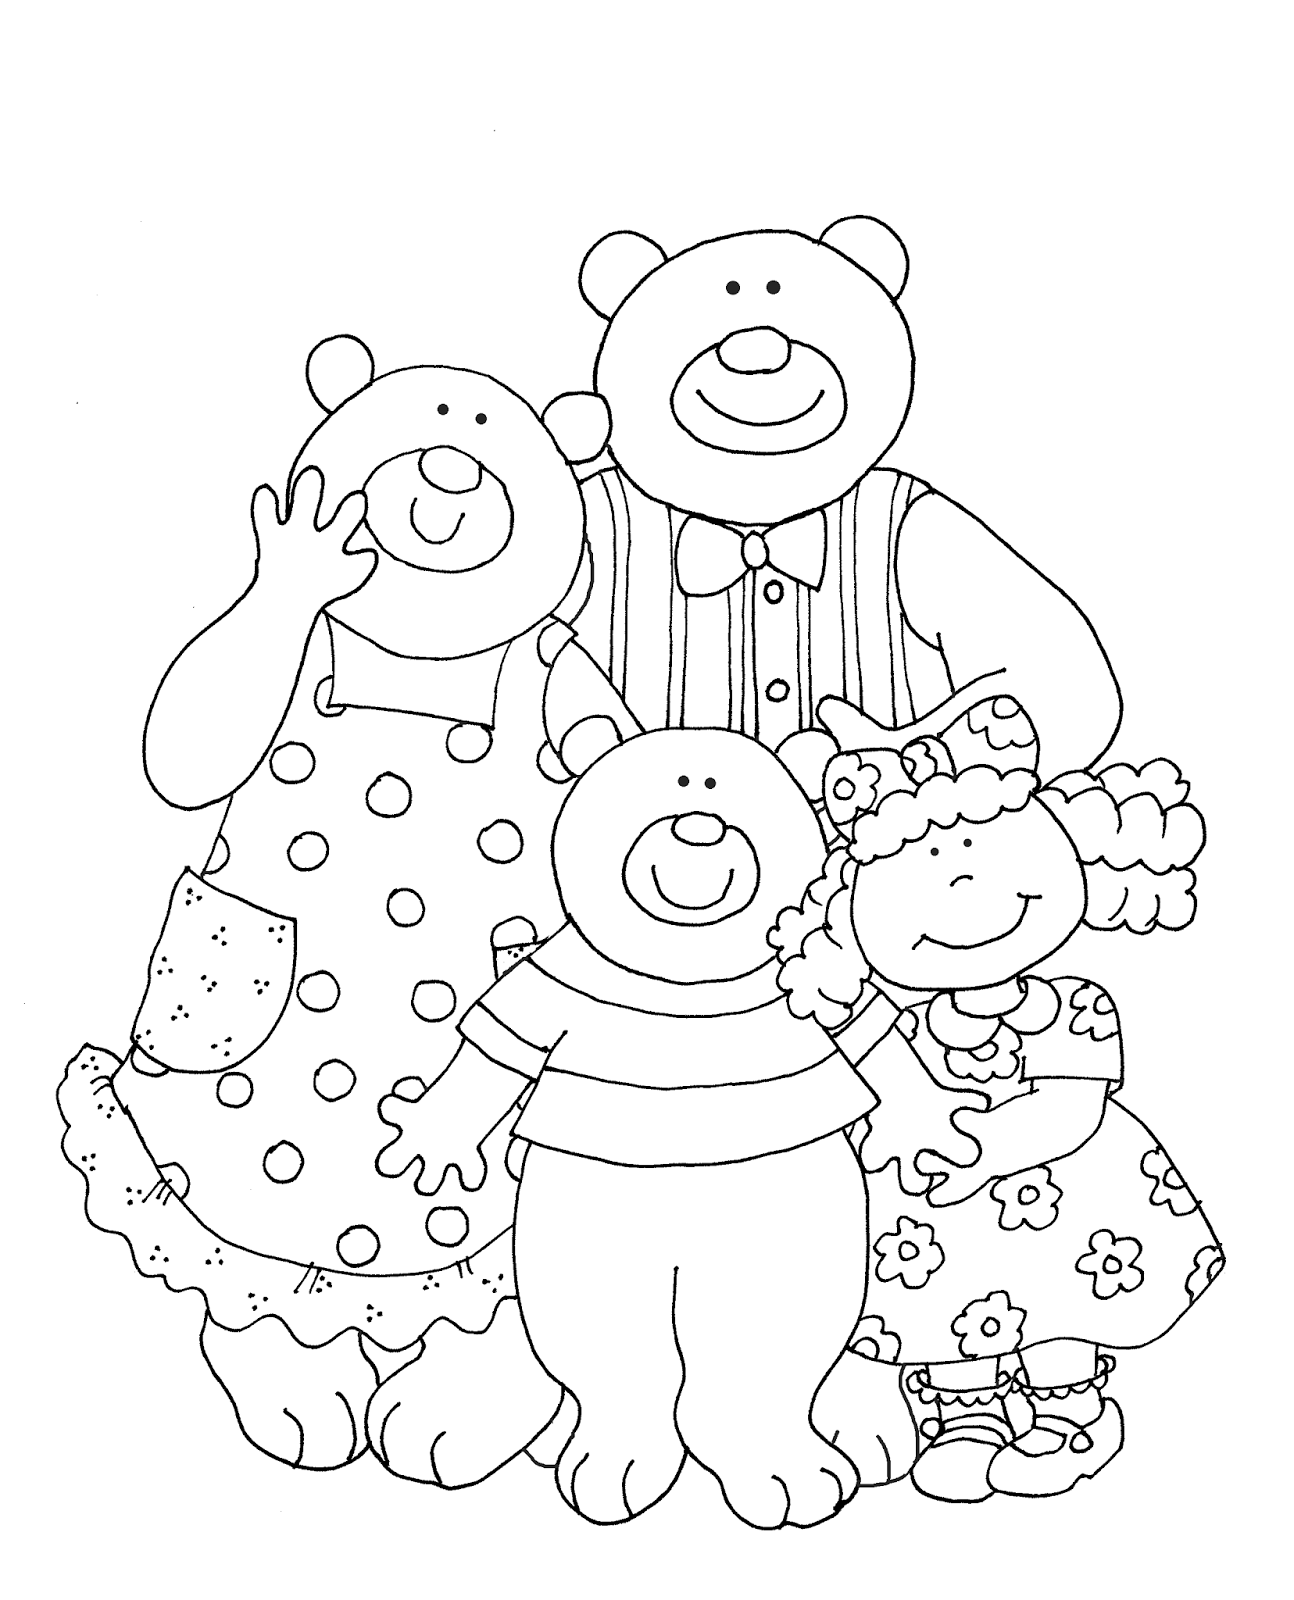 Free Dearie Dolls Digi Stamps: Goldilocks and the Three Bears ... graphic freeuse download